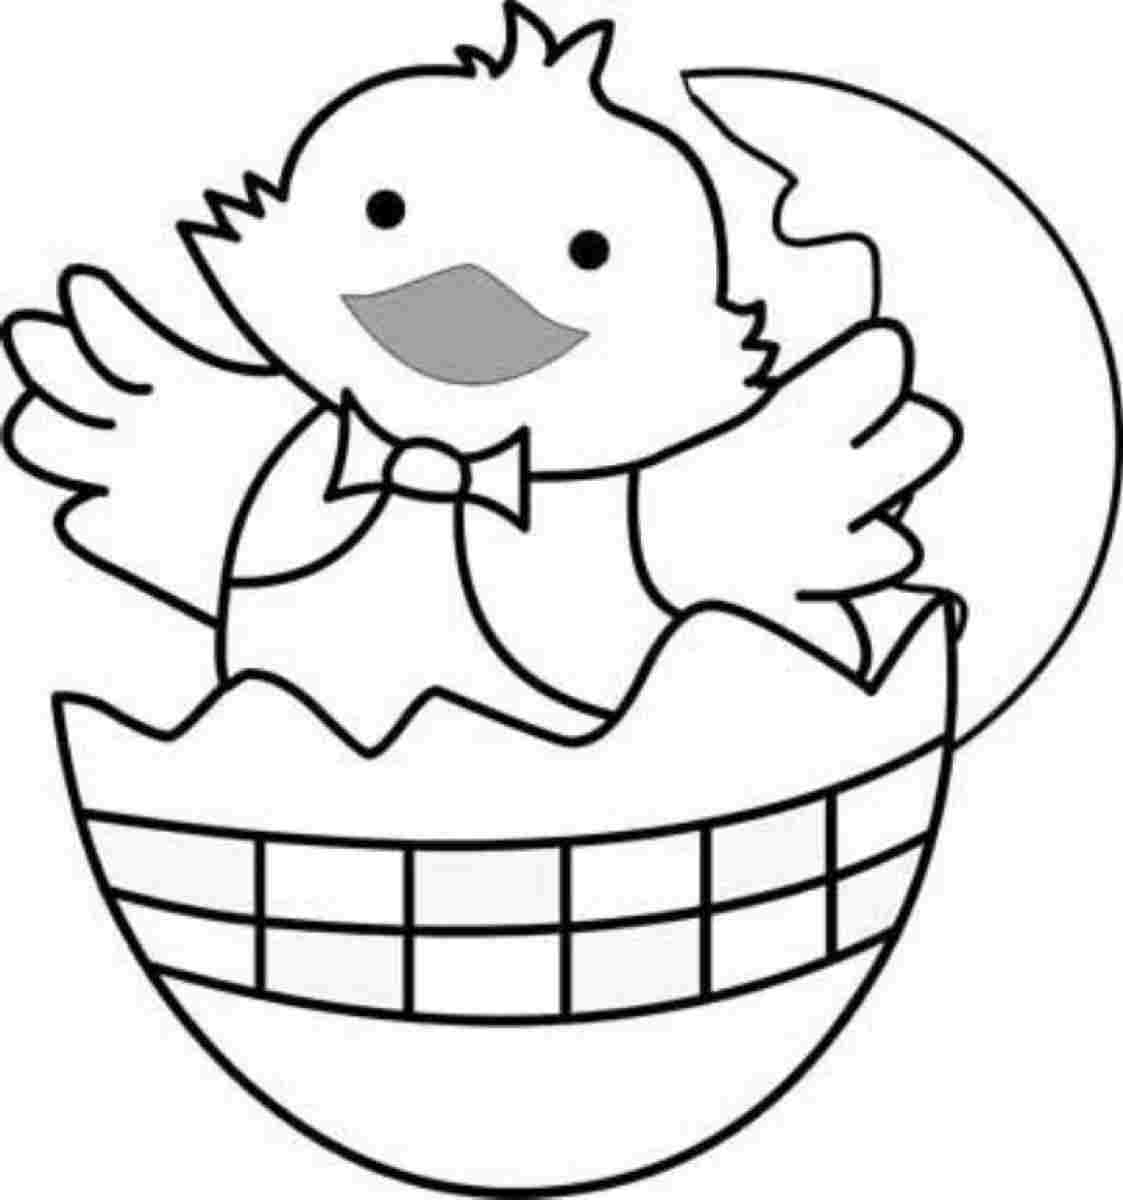 Free Printable Easter Chick Coloring Pages